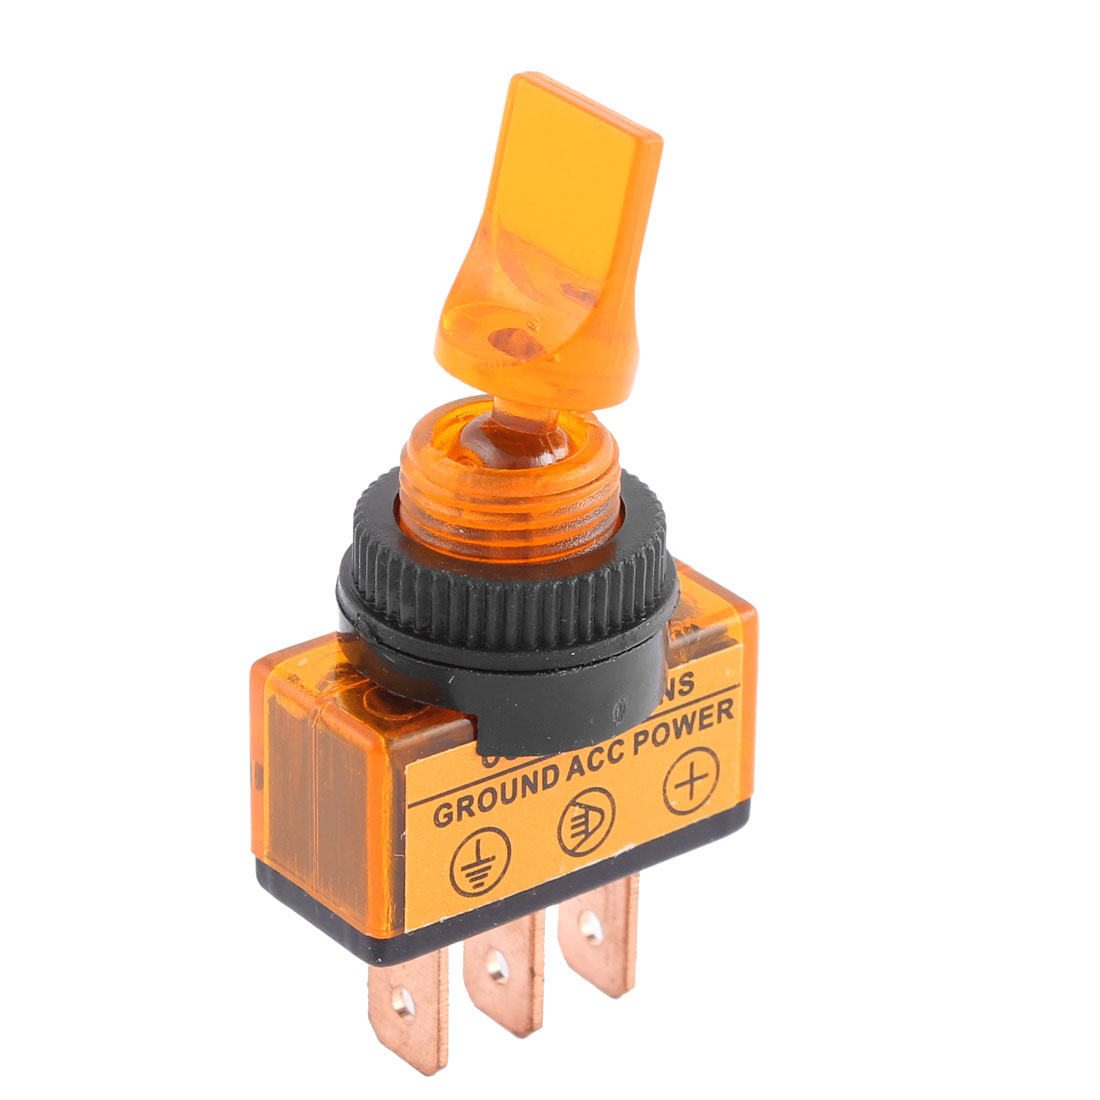 DC 12V 20A Lamp Short Arm 2 Positions SPST Latching Toggle Switch 12mm